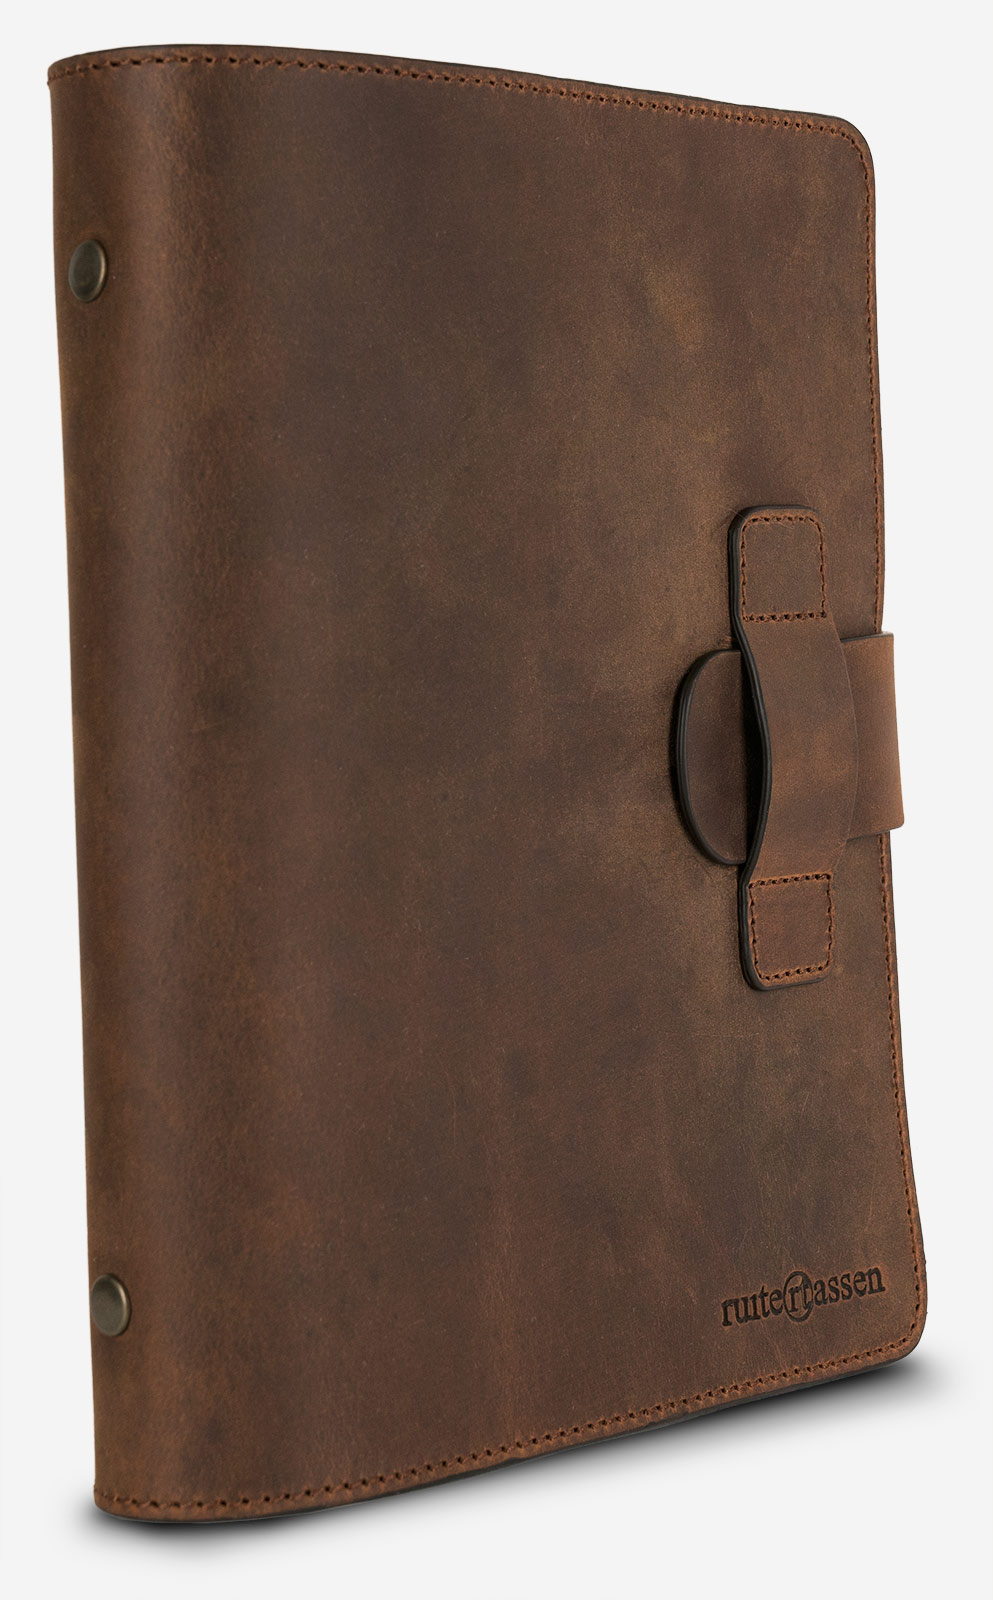 Vegetable-tanned leather refillable cover.